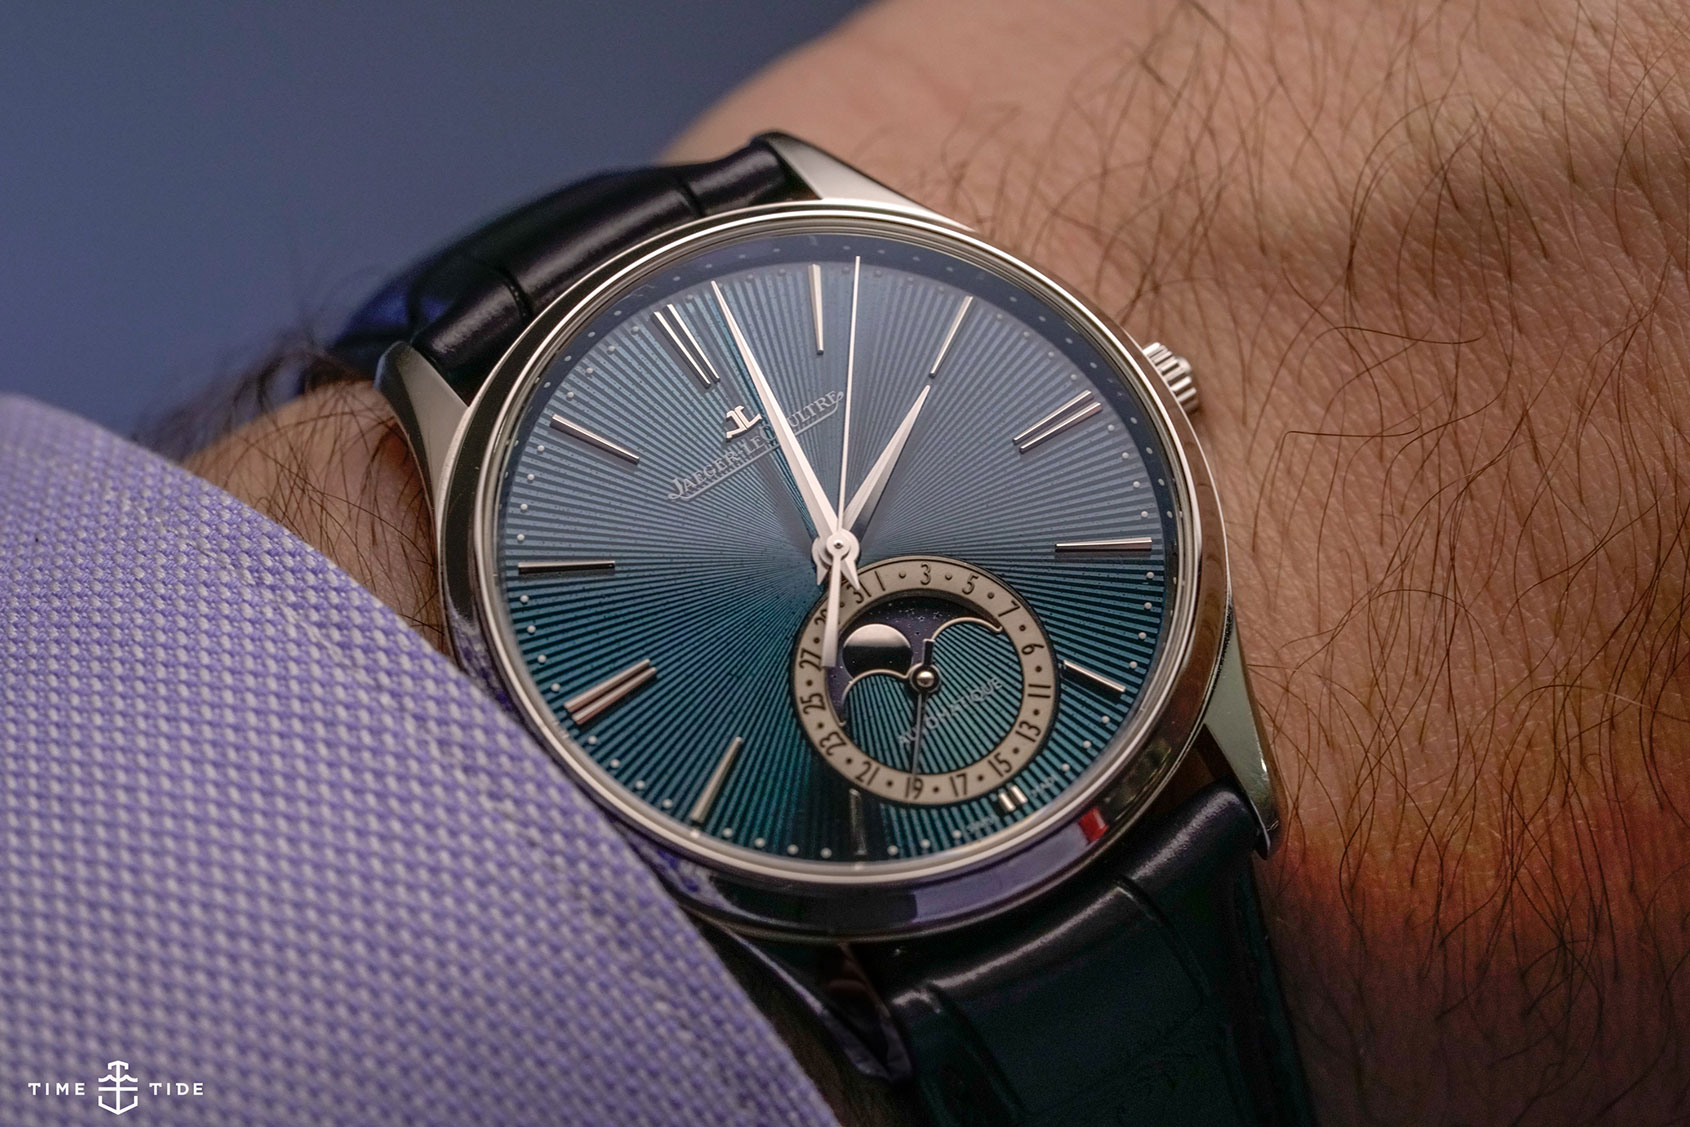 HANDS-ON: The Jaeger-LeCoultre Master Ultra Thin Moon Enamel